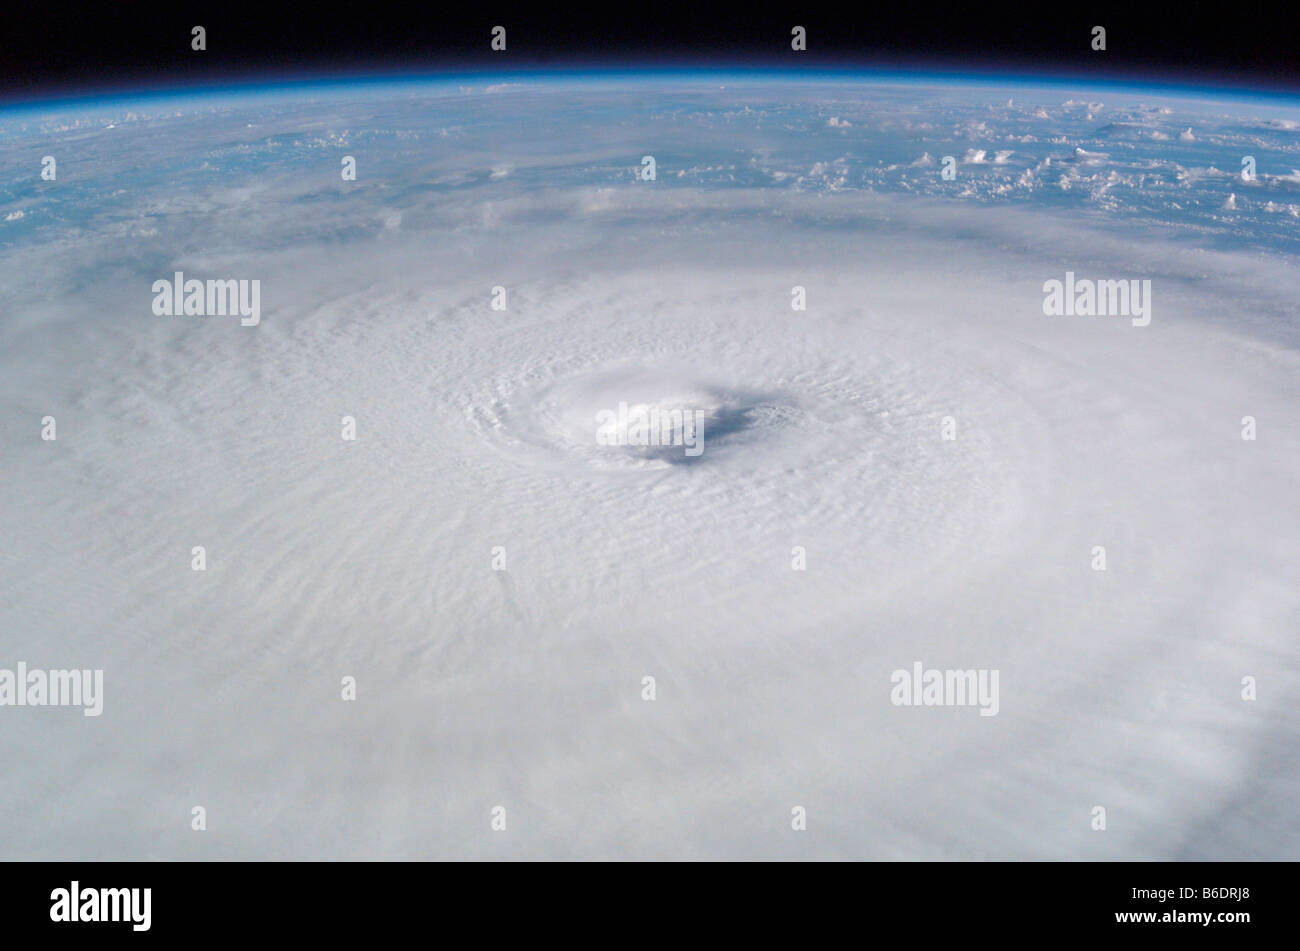 Hurricane Isabel. This image was taken from the International Space Station on 13th September 2003. Stock Photo